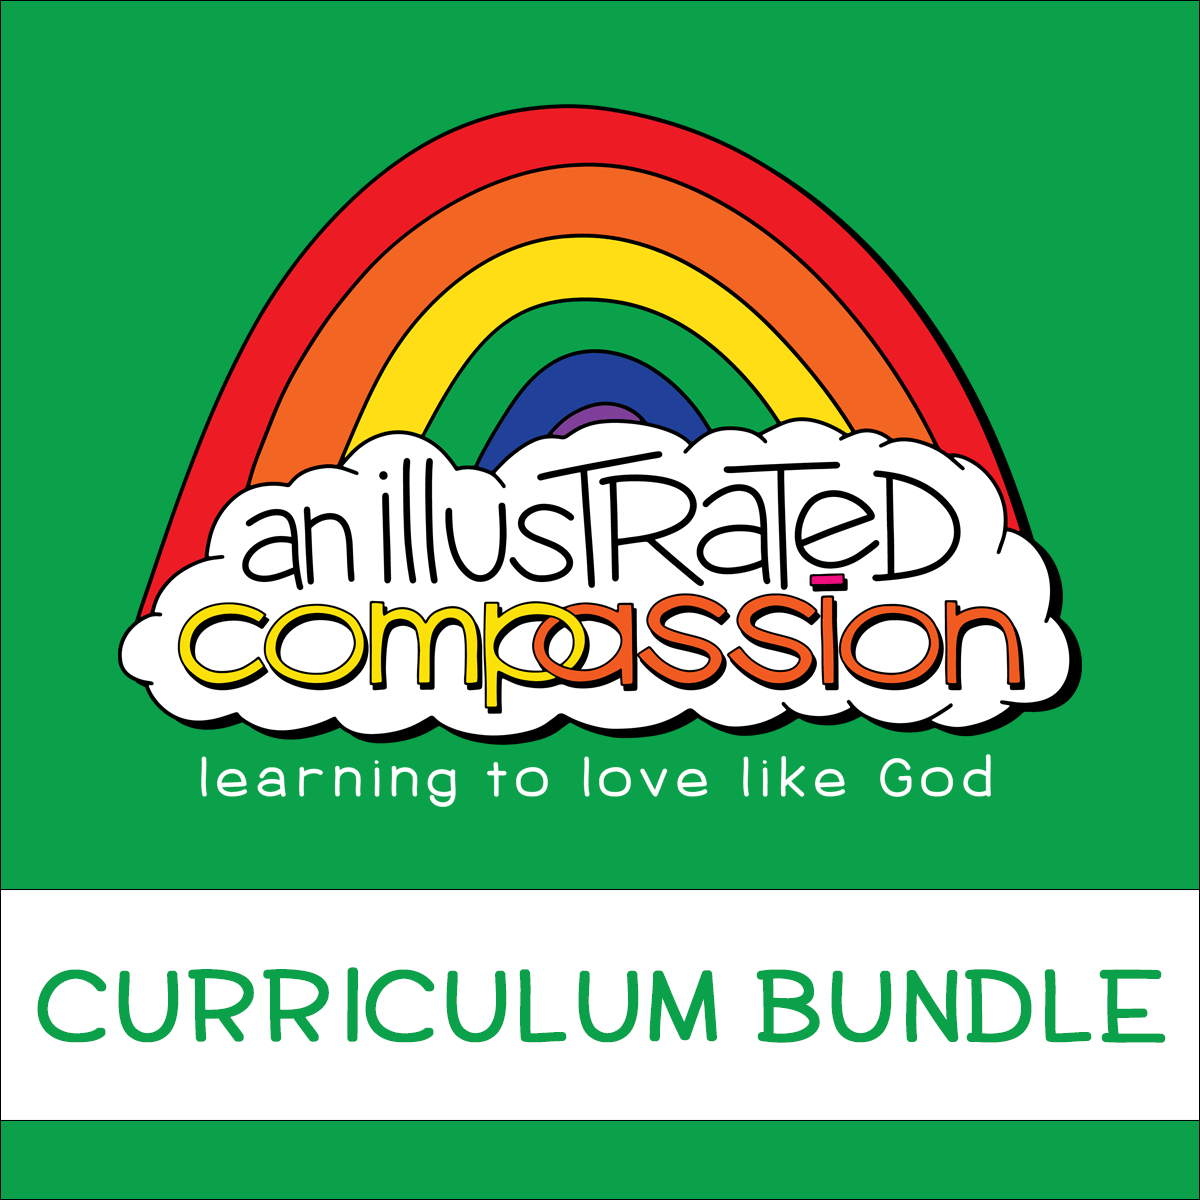 An Illustrated Compassion: Learning to Love Like God Curriculum